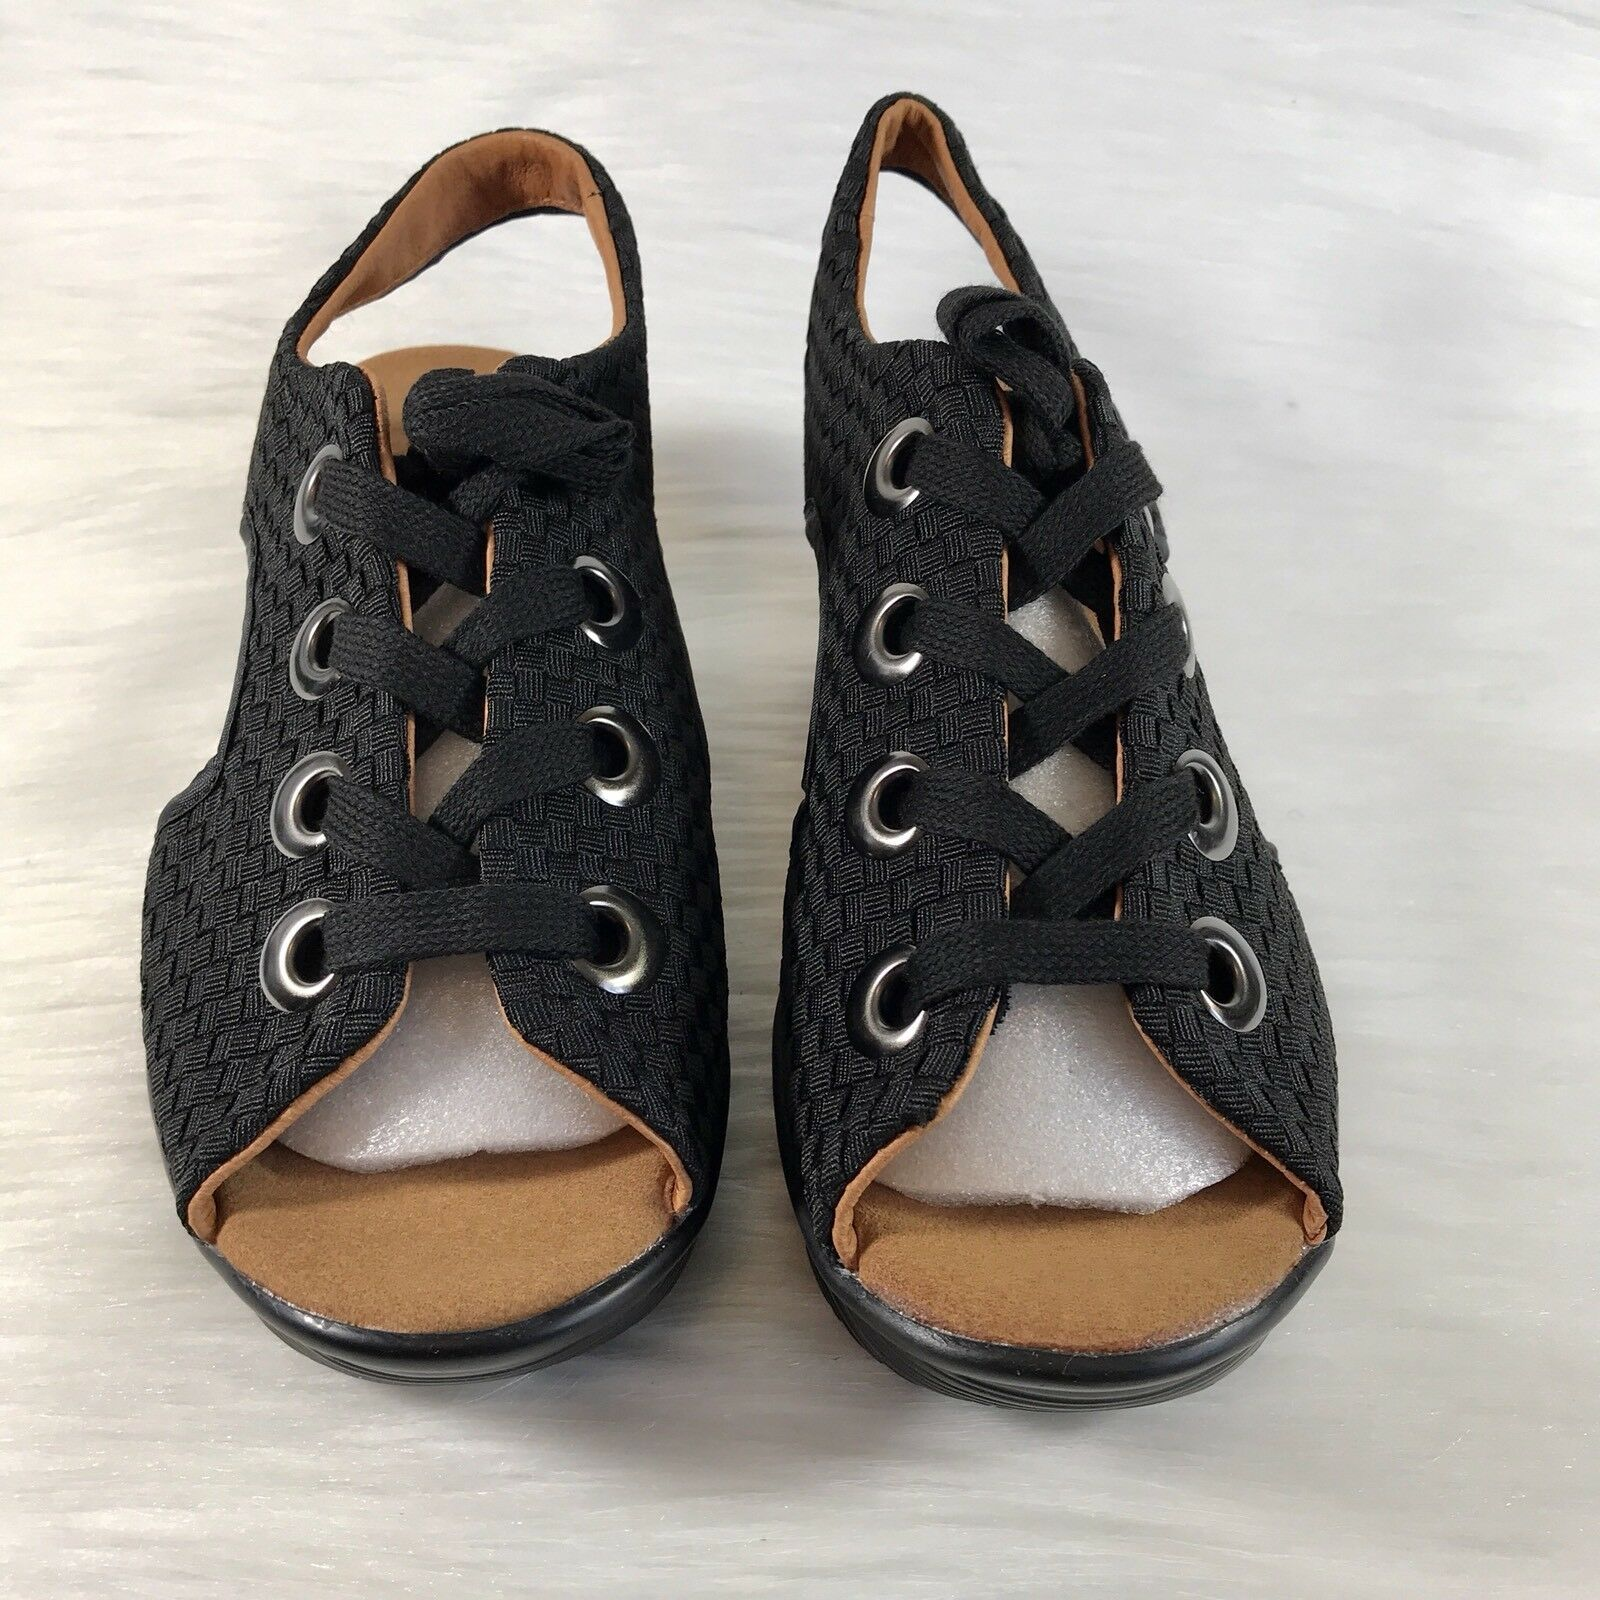 Bernie Mev Marcelo Women's Wedge Wedge Wedge Sandals Black Textile Lace Up Size 40 US 9.5-10 4796a7